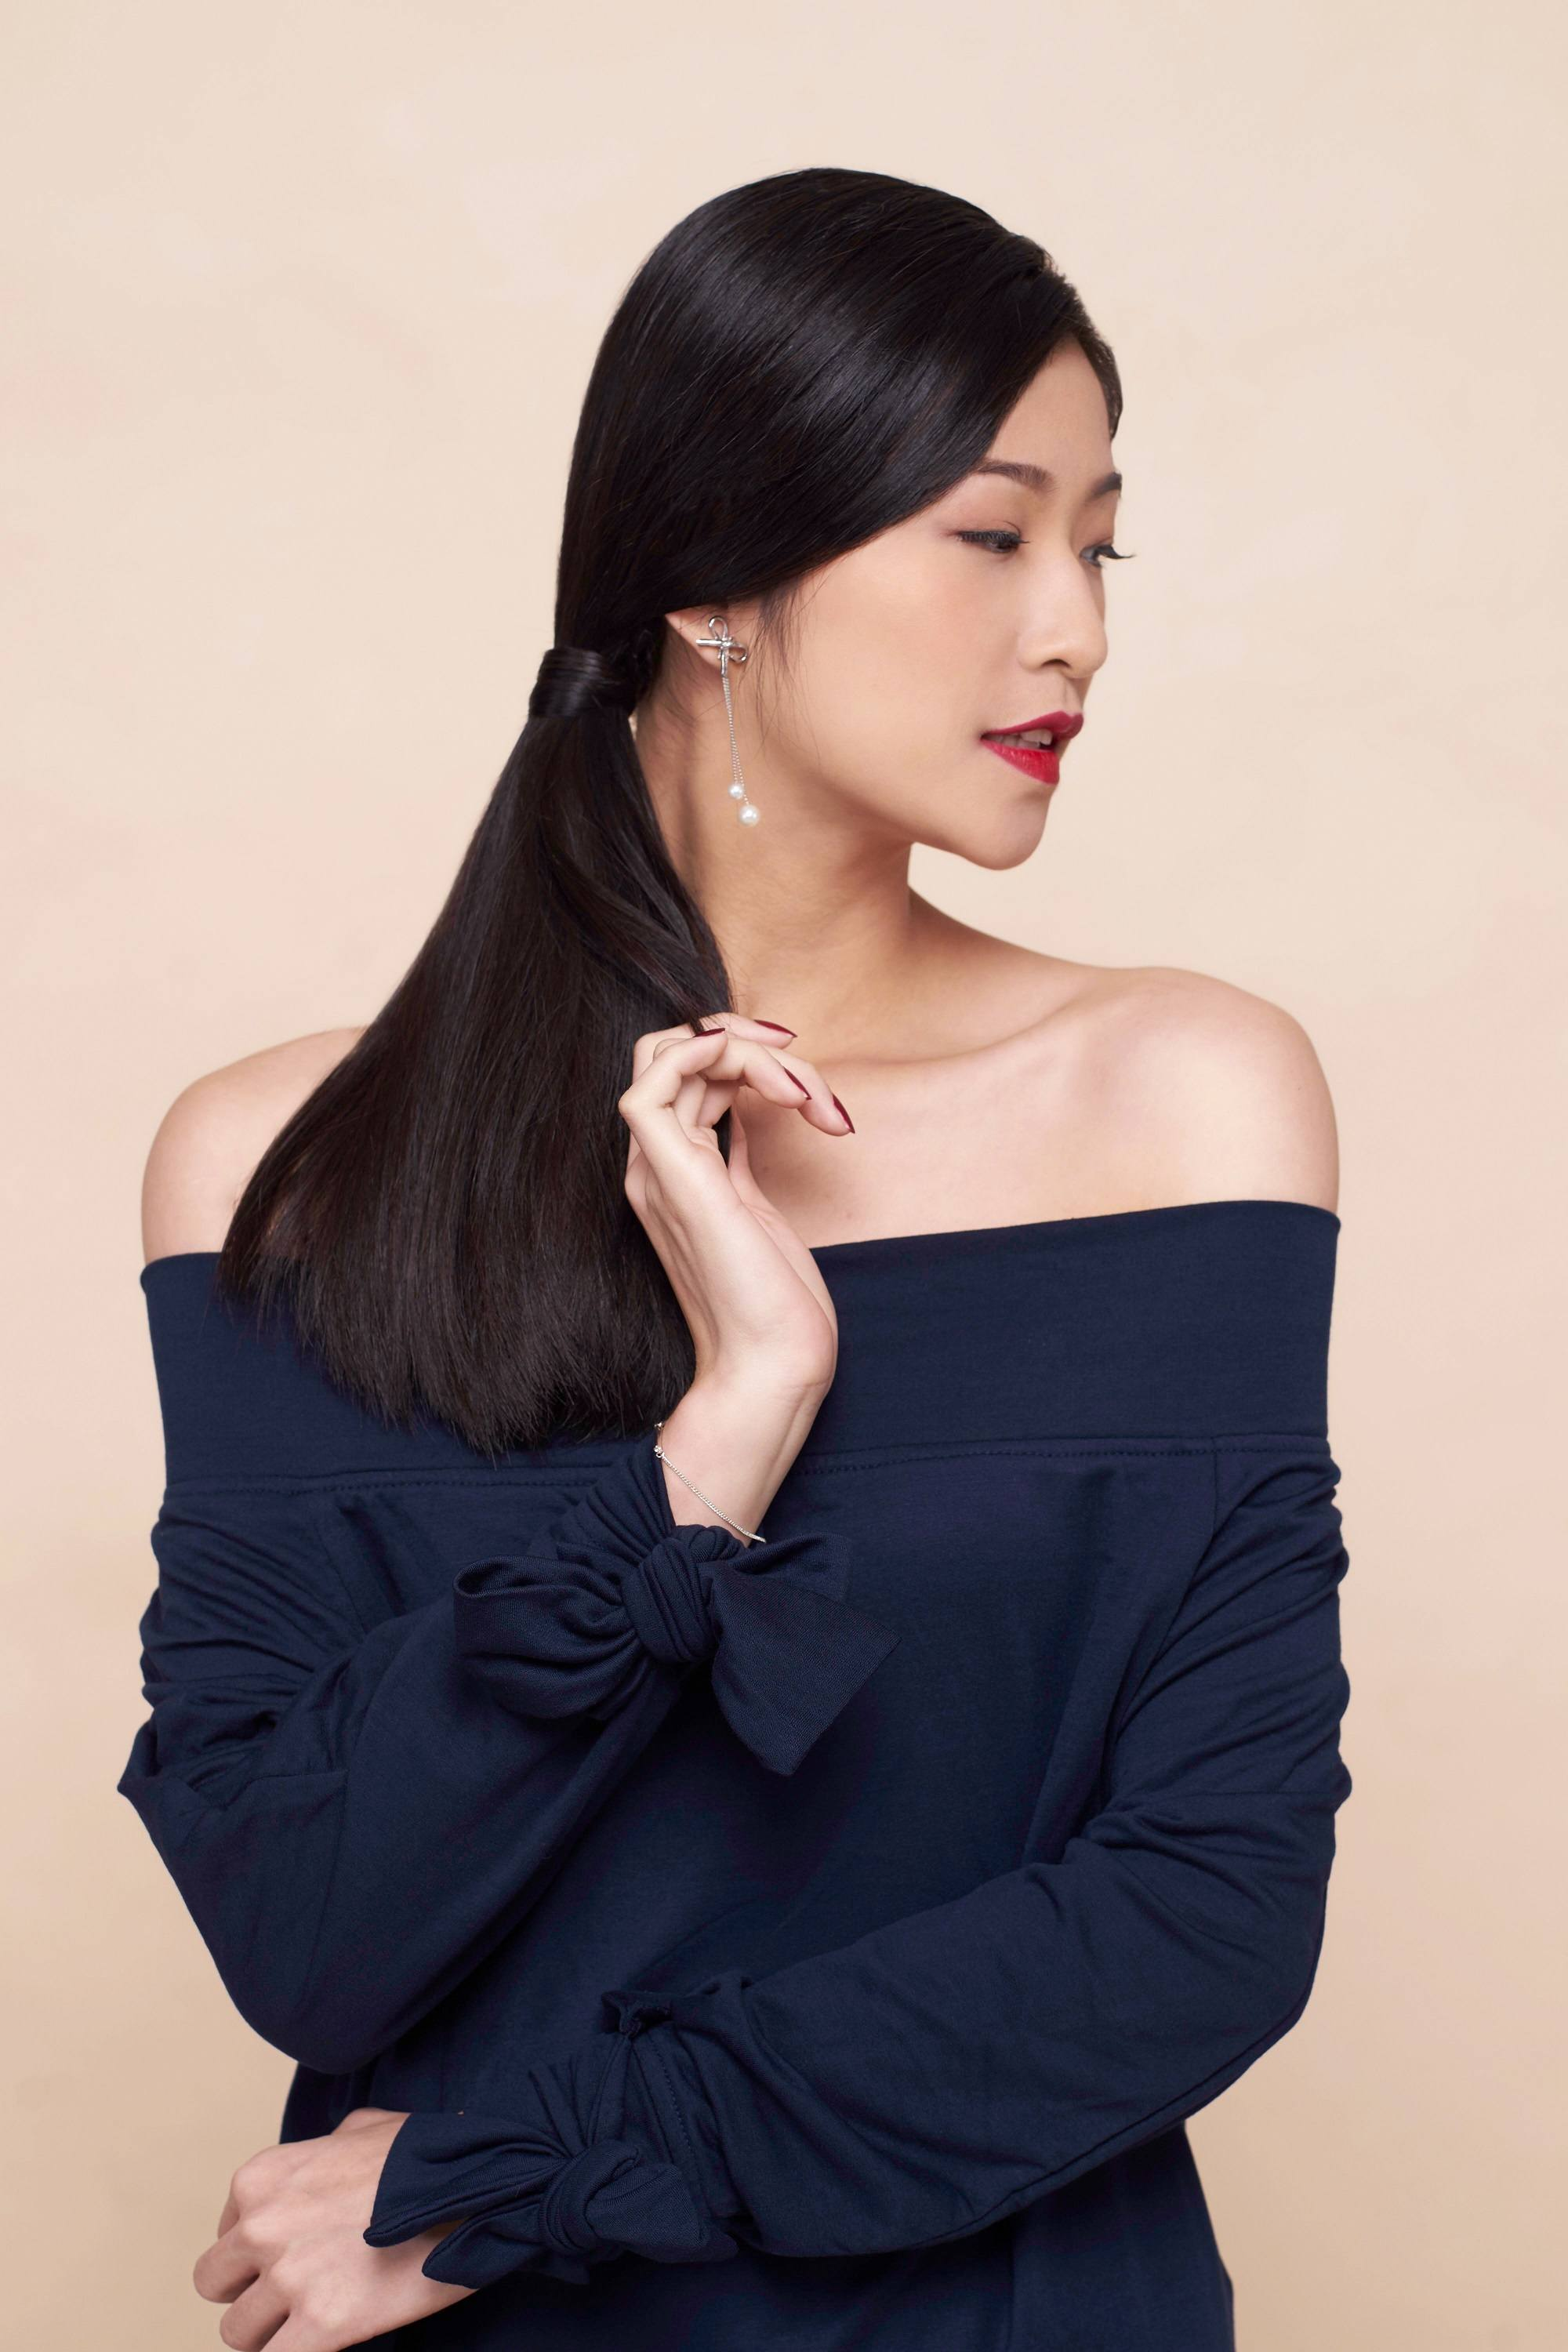 Asian woman wearing navy blue blouse with long black hair in side ponytail standing against a, peach background to represent users of serum conditioners